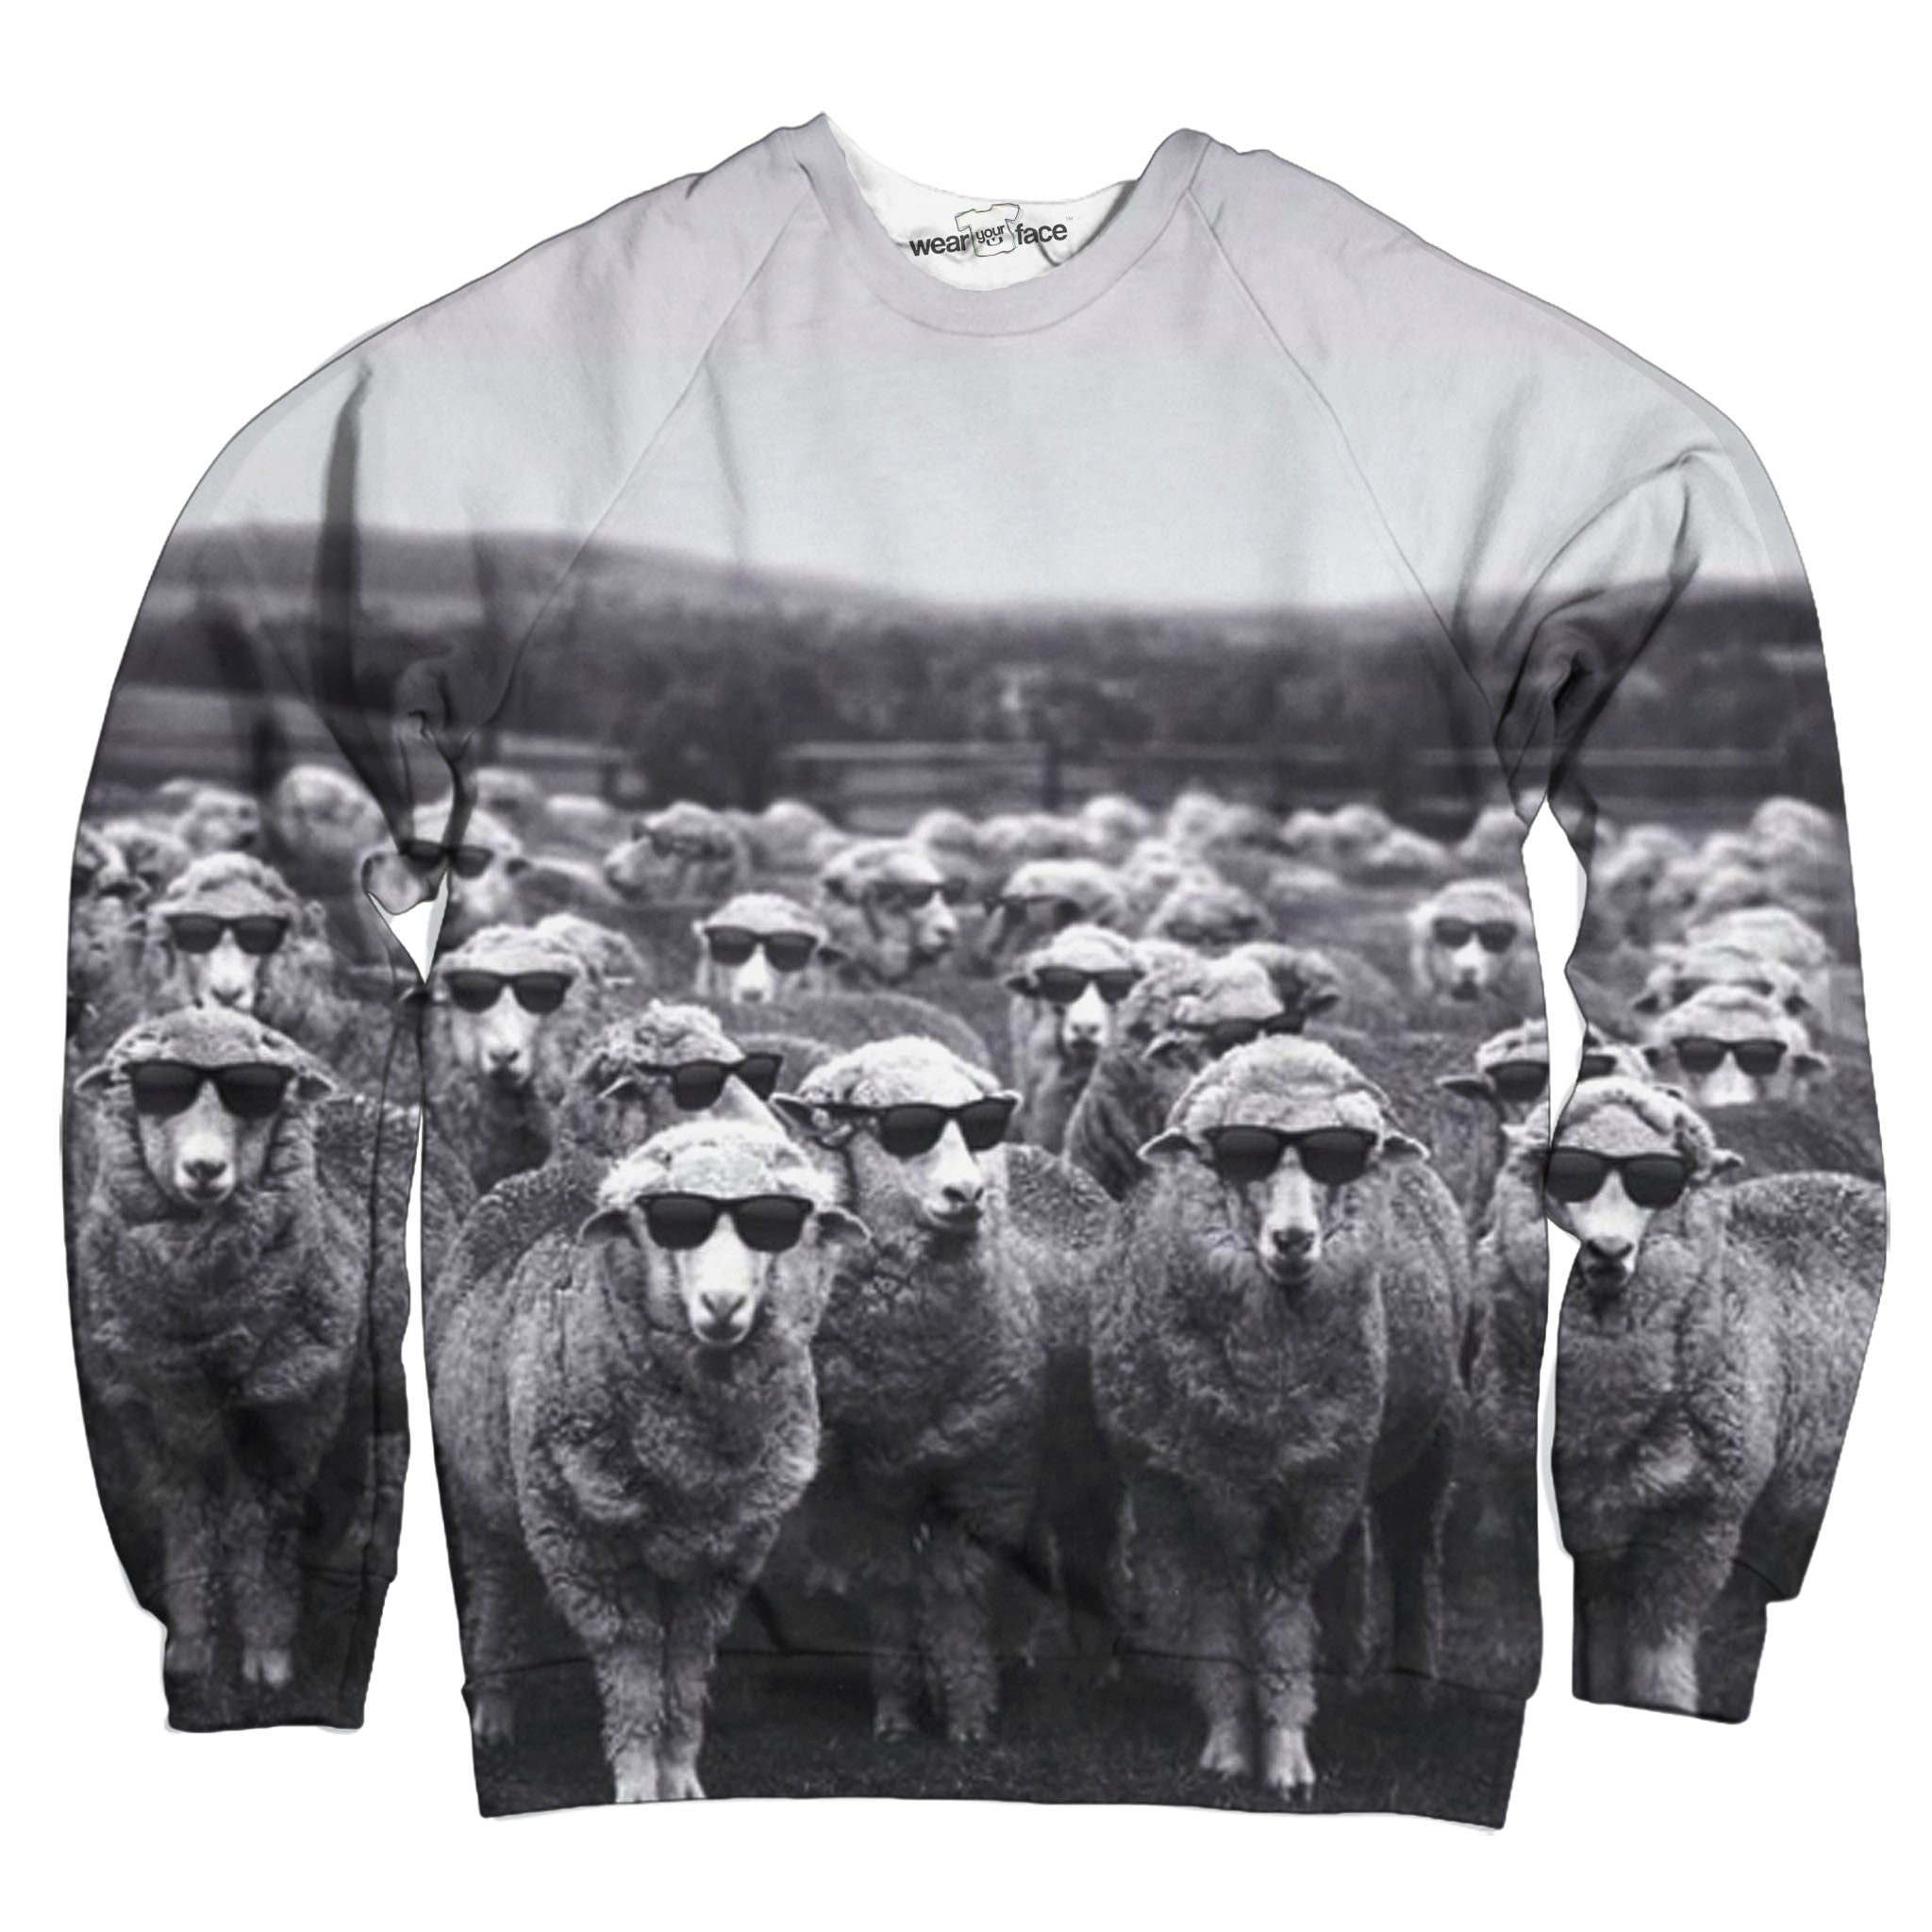 Sheeple Sweatshirt